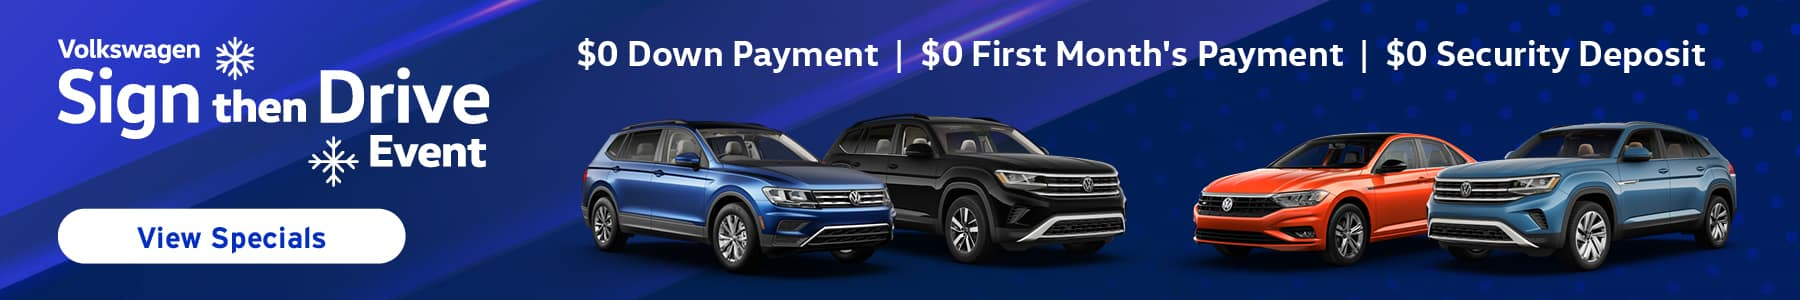 Volkswagen Sign the Drive Event. $0 Down payment, $0 first month's payment, $0 security deposit. Click to tap to view specials.